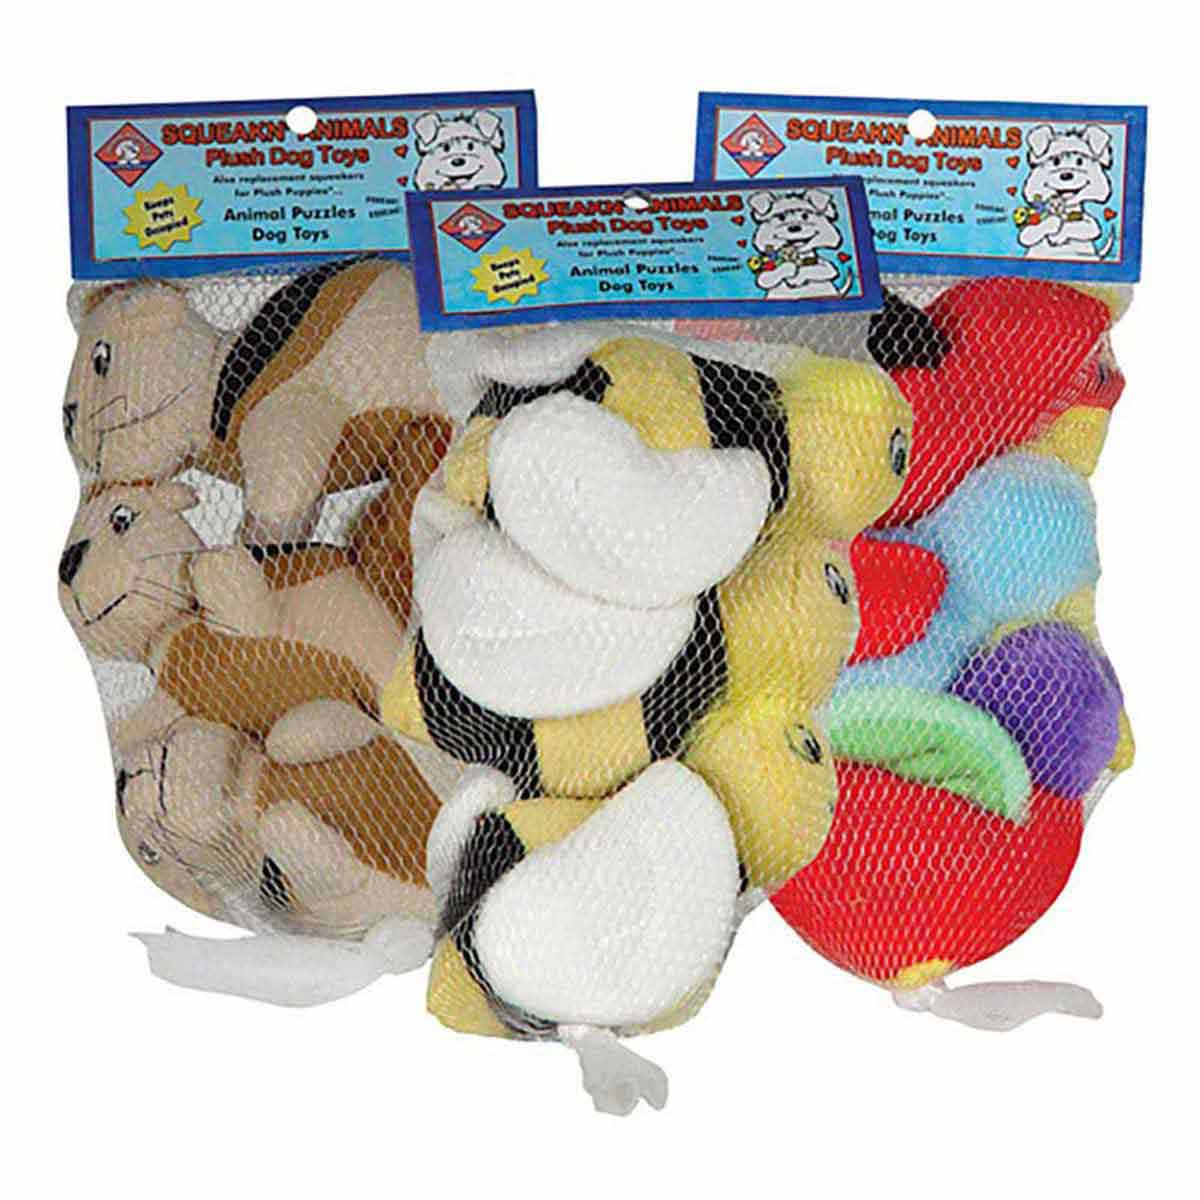 Outward Hound Squeakin' Animals 3 Pack of Birds